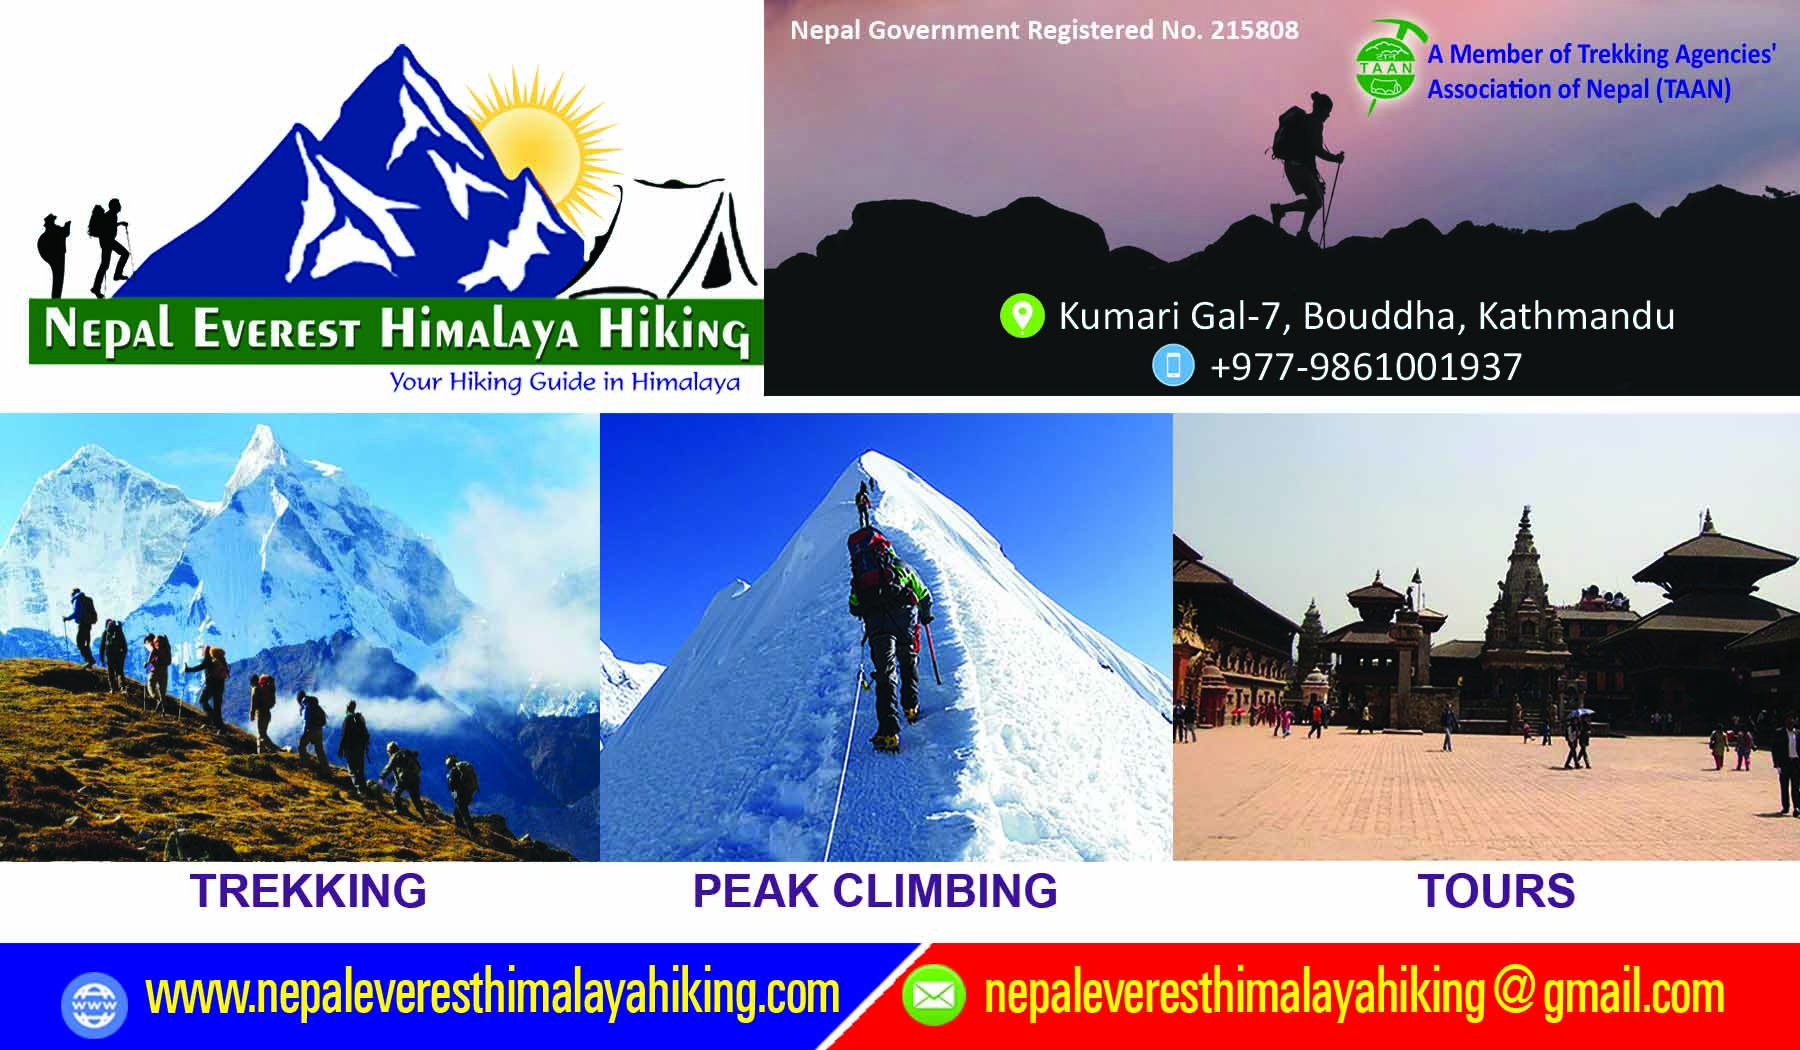 Best Guide in Himalaya